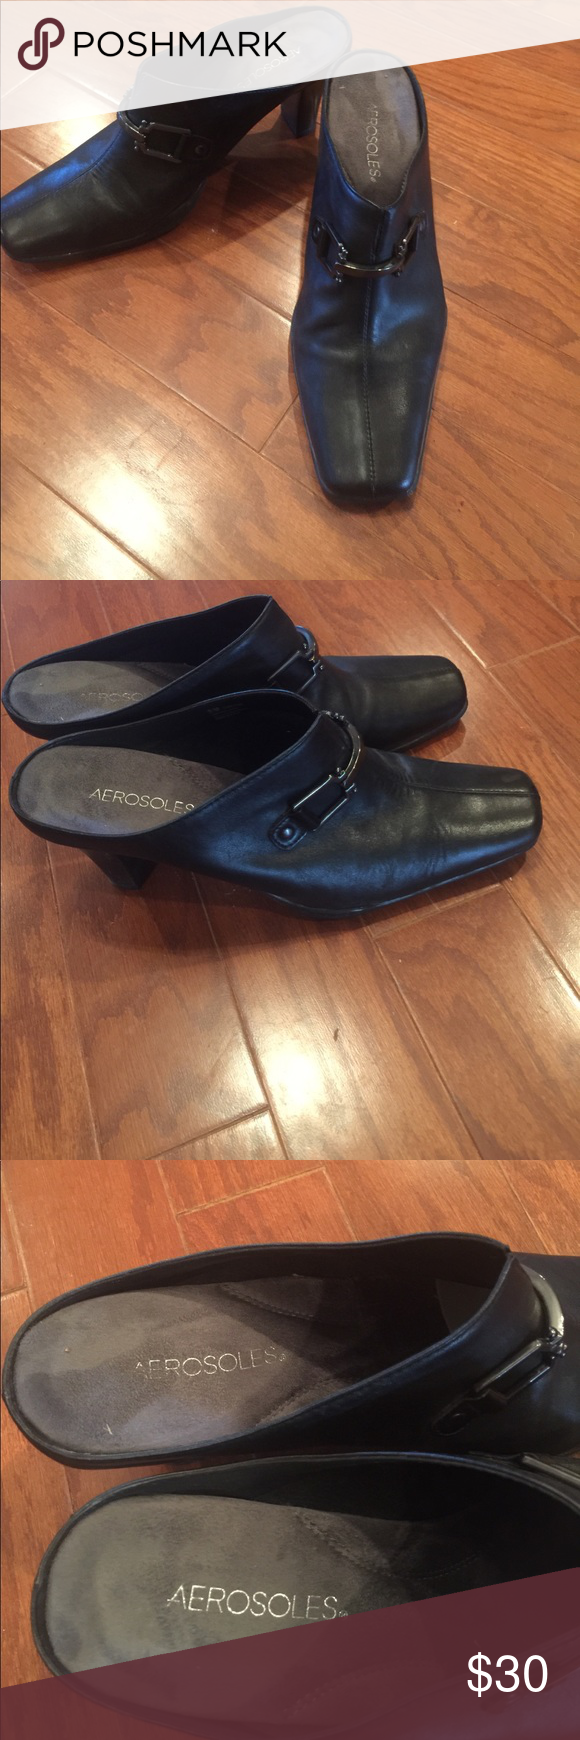 Aerosole Black mules Aerosole black mules . Size 9.5 B great condition. AEROSOLES Shoes Mules & Clogs